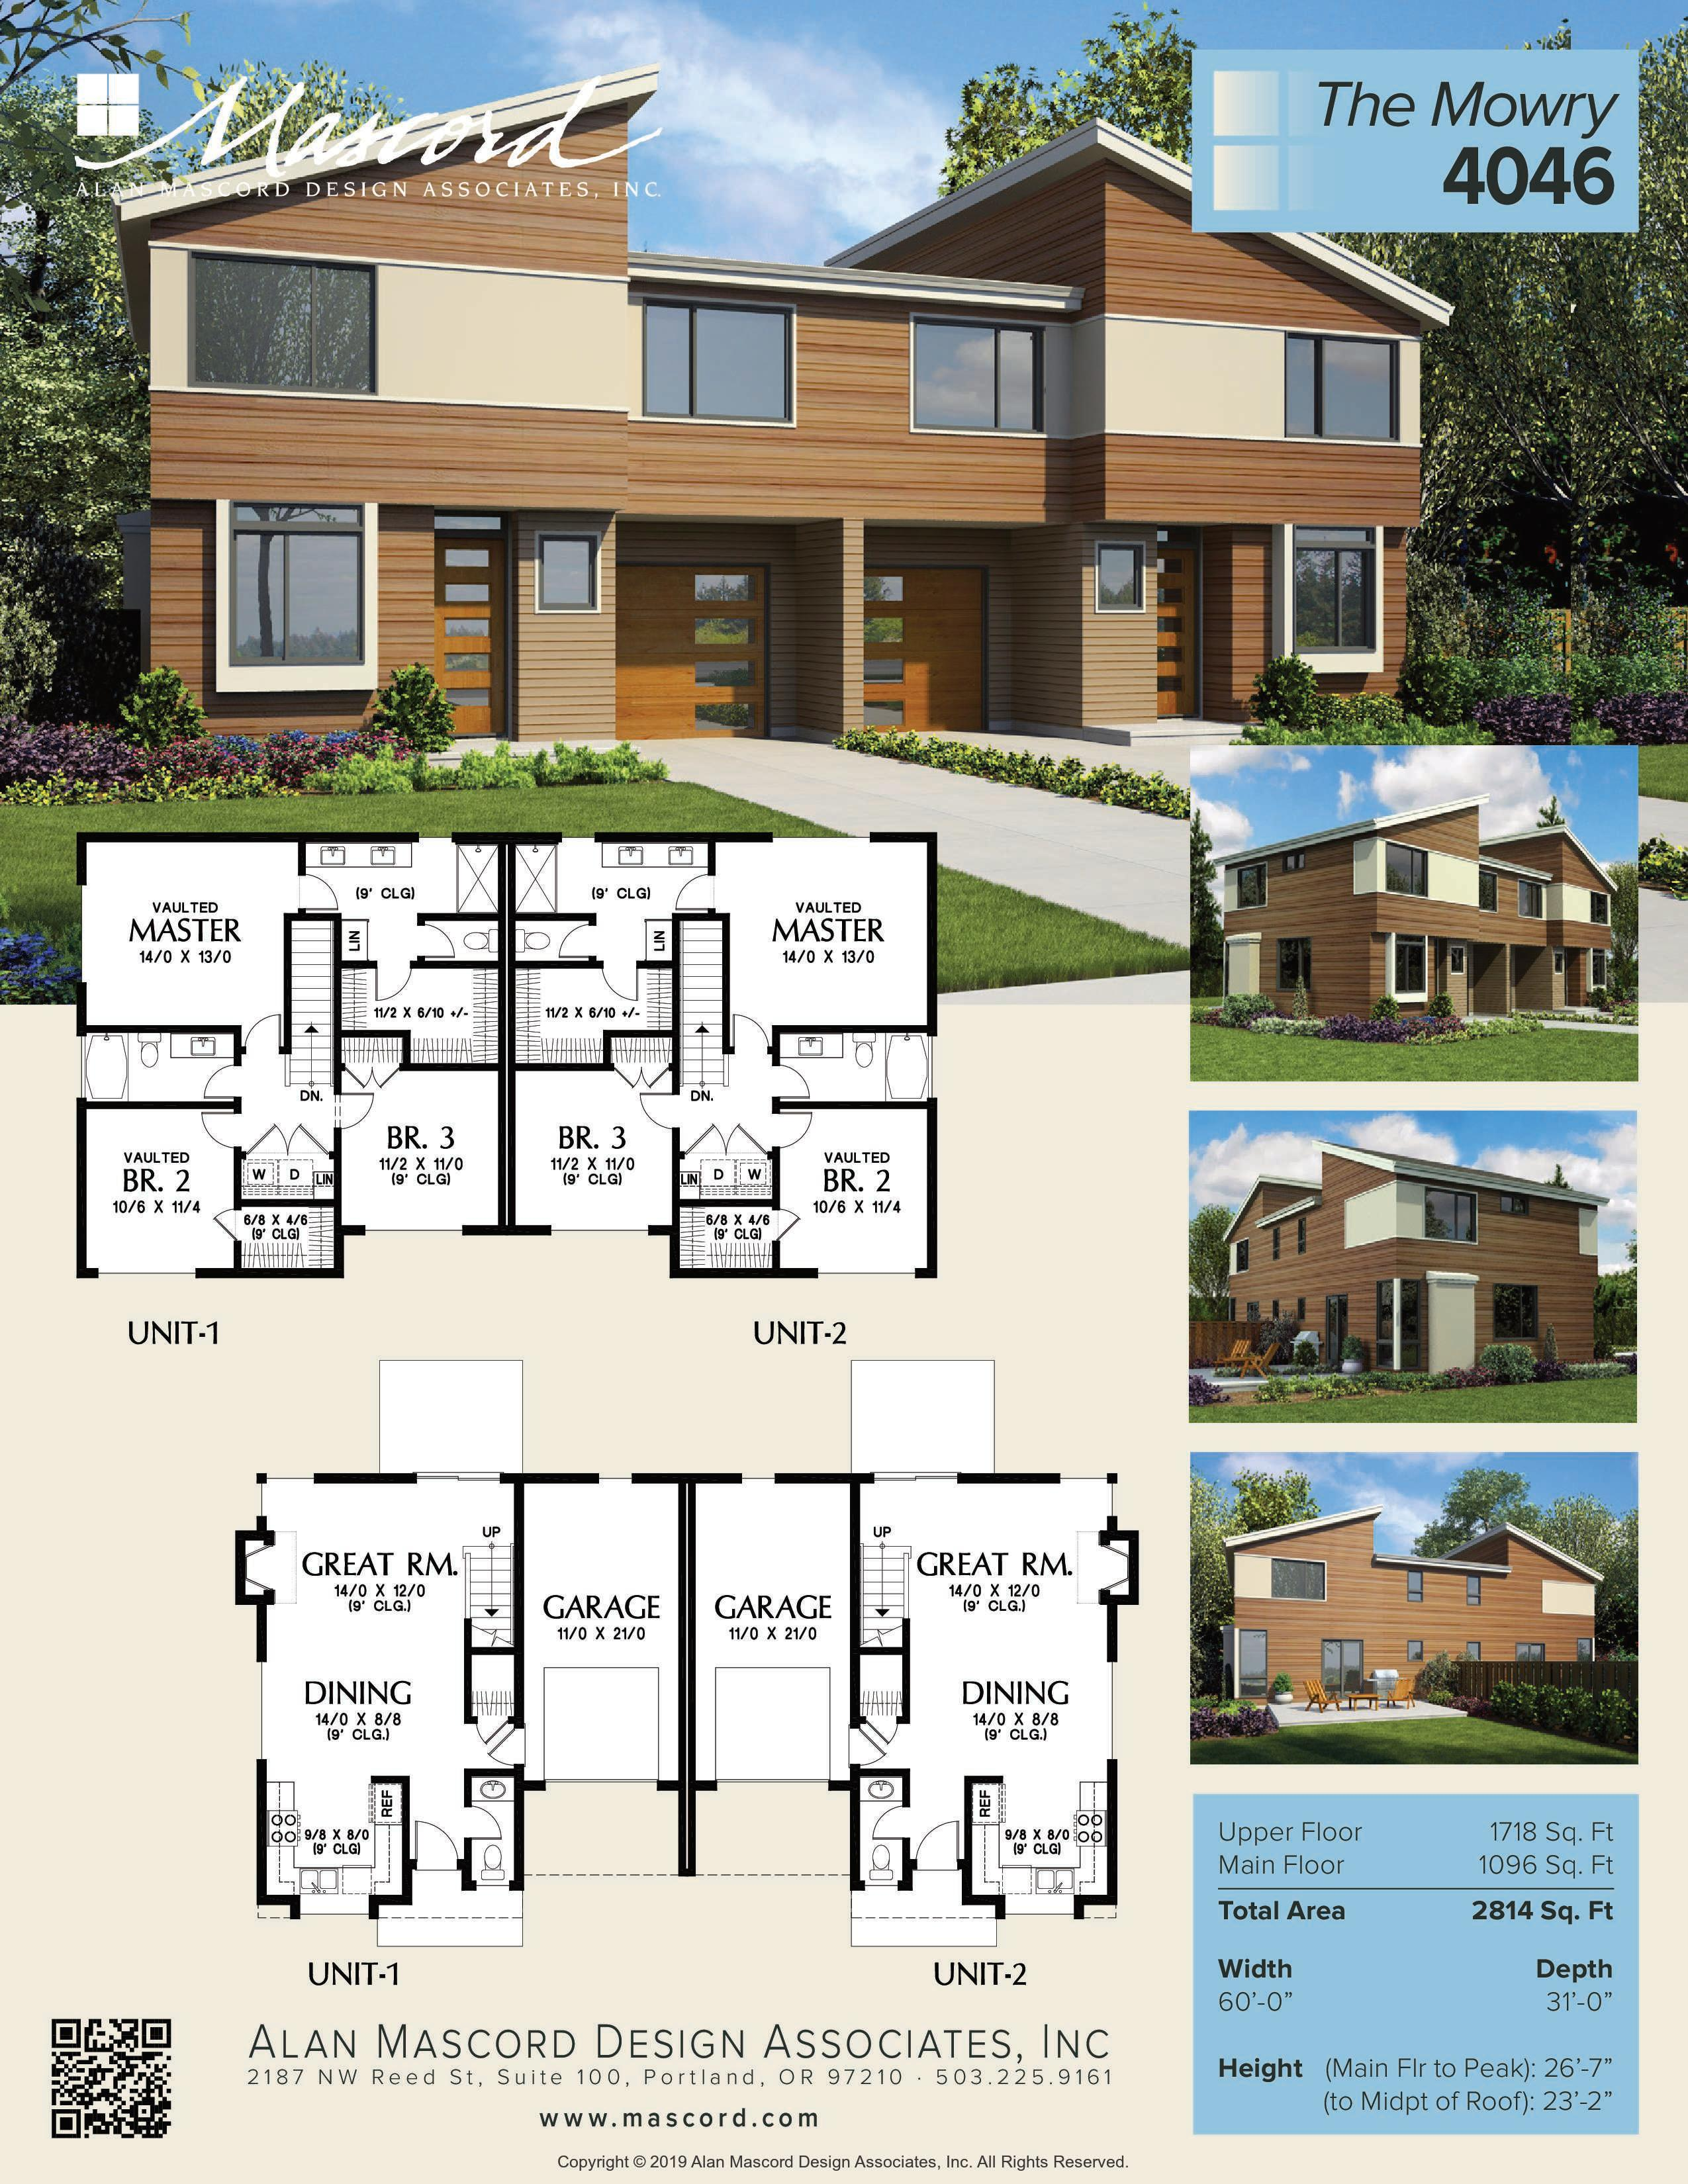 Multi Units Townhomes 3 Bedrooms 2.5 Bathrooms-page-001